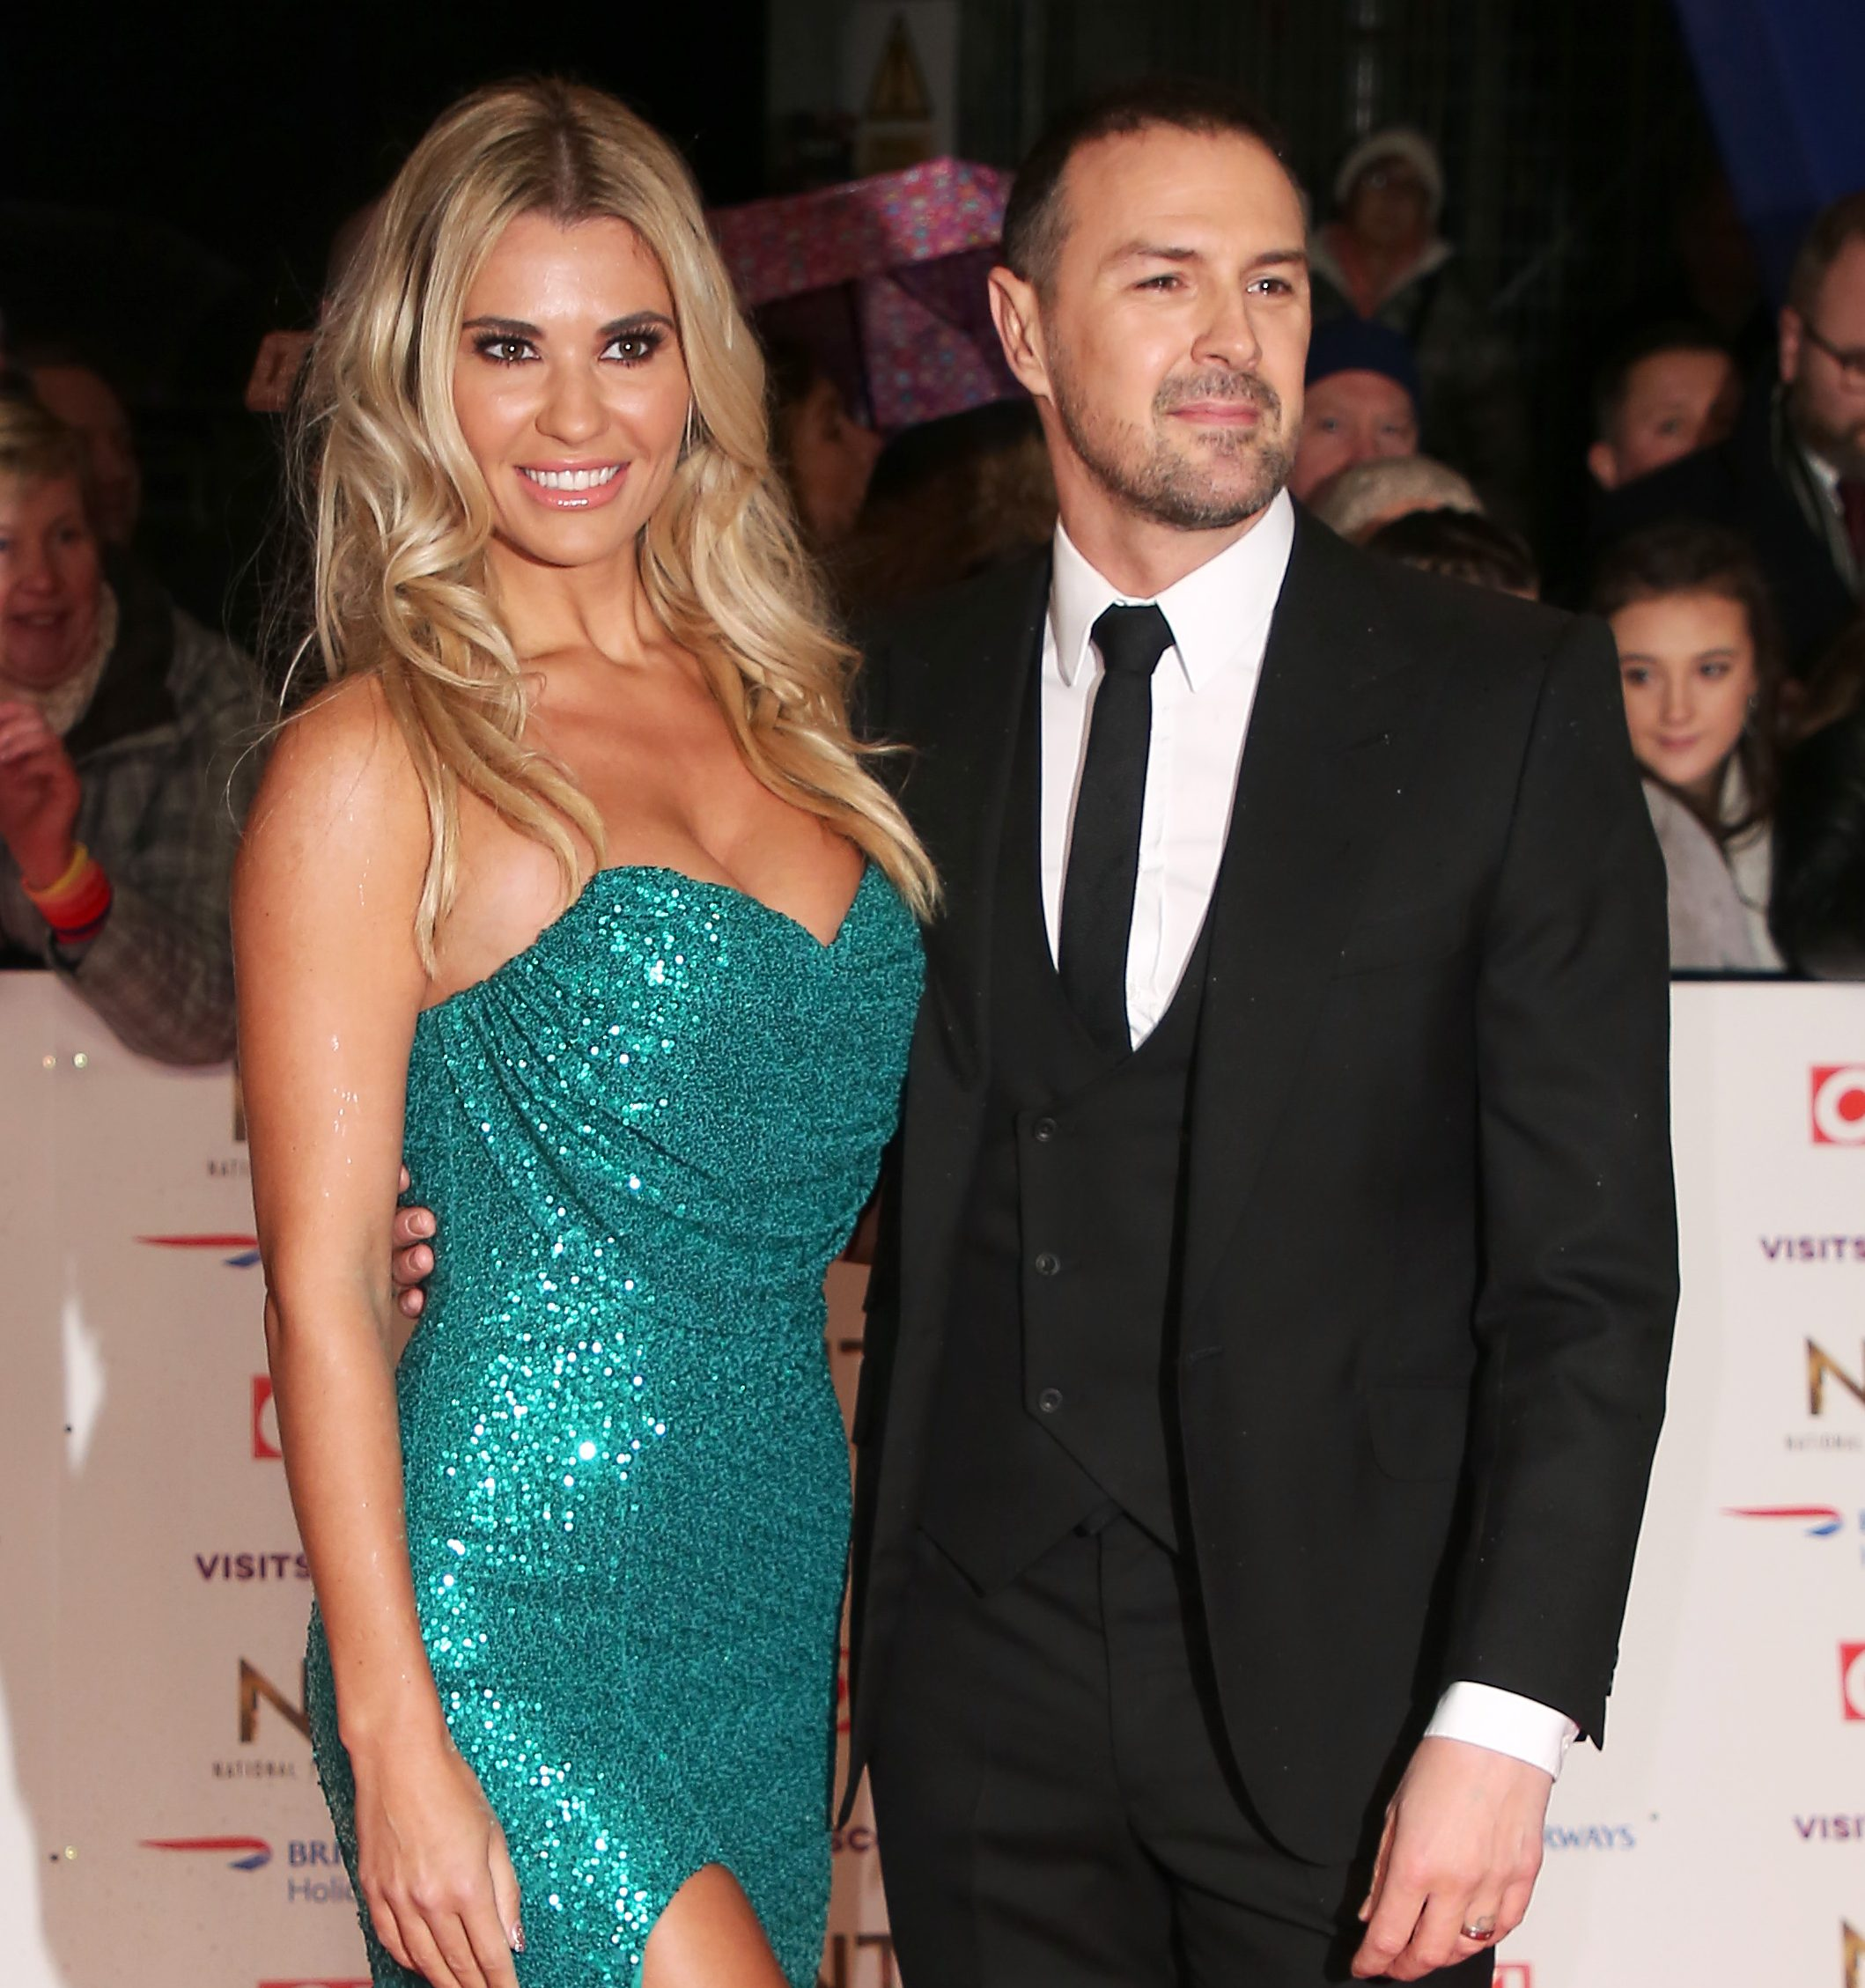 Christine McGuinness has revealed her and Paddy's daughter has autism